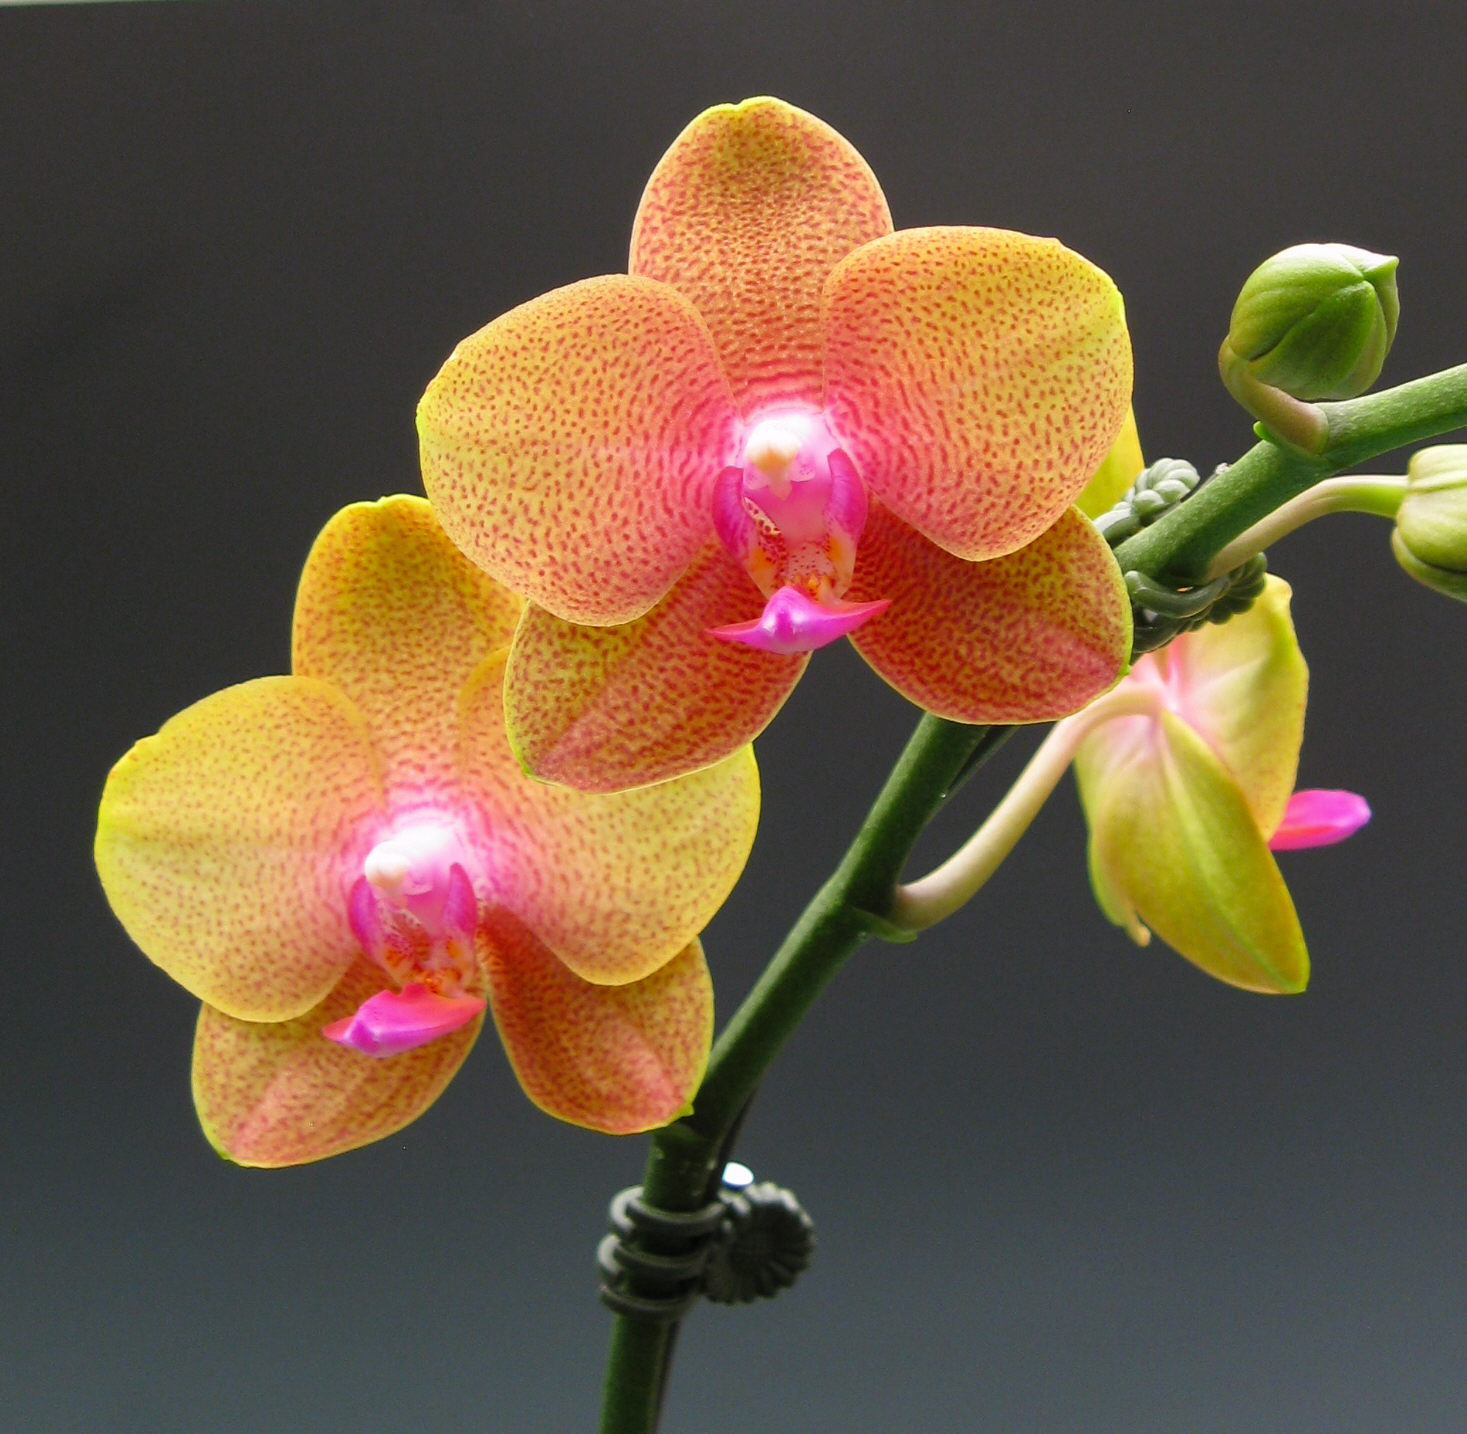 Buy Fresh Cut Orange Cymbidium Orchid From Hawaii & Thailand